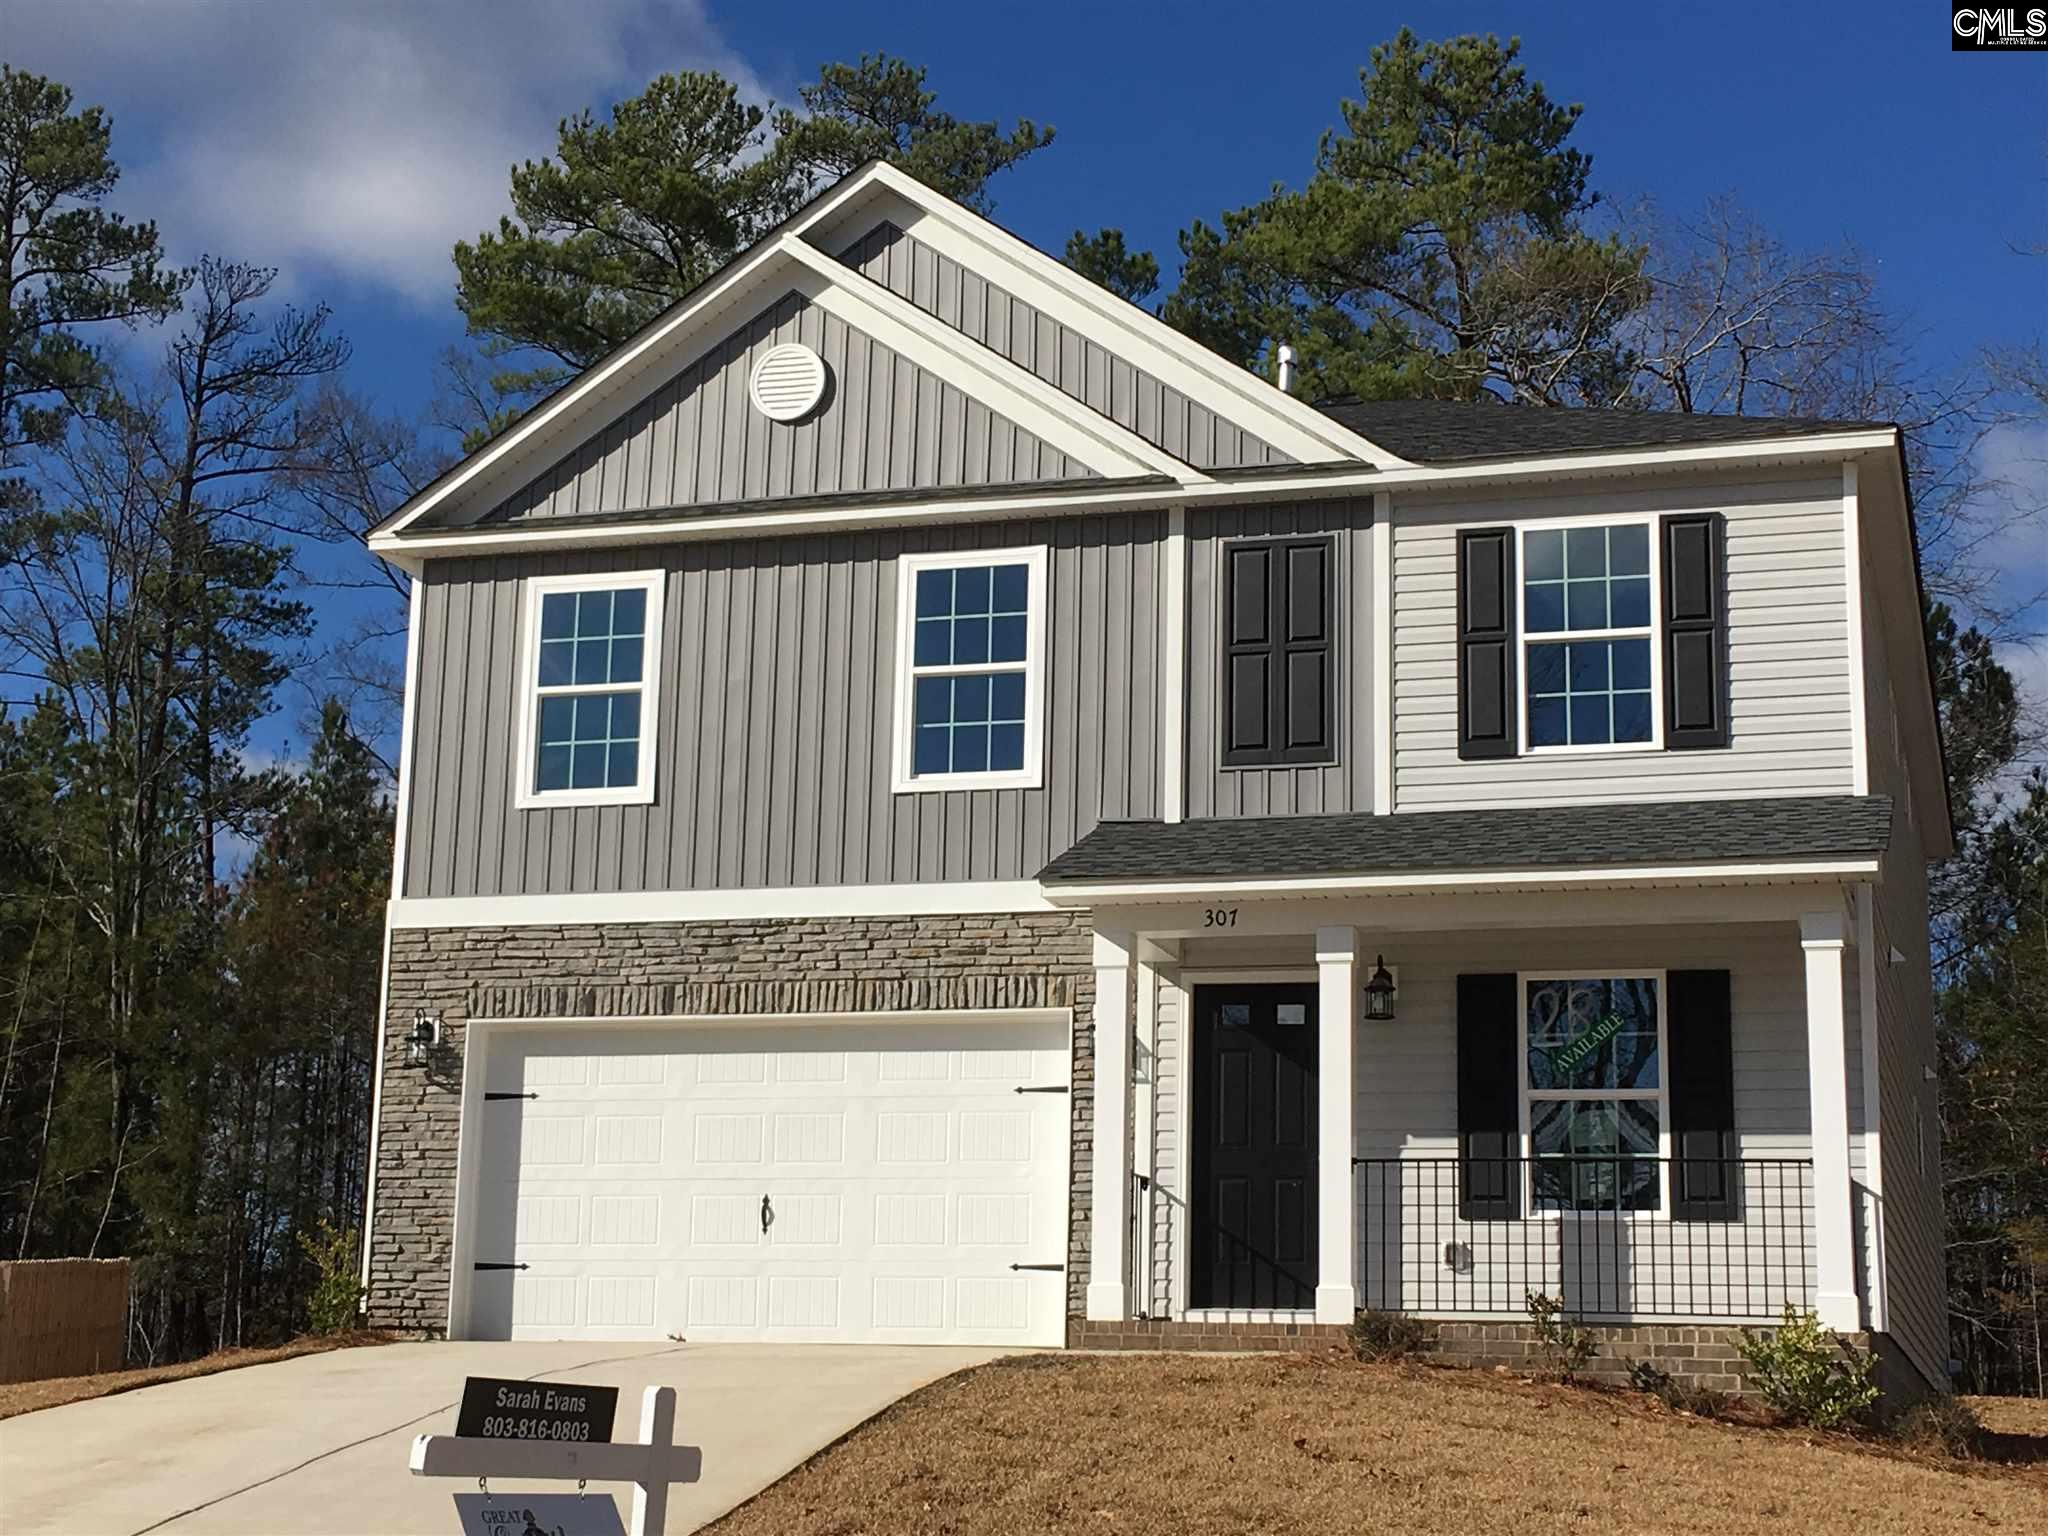 307 Dolly Horn Chapin, SC 29036